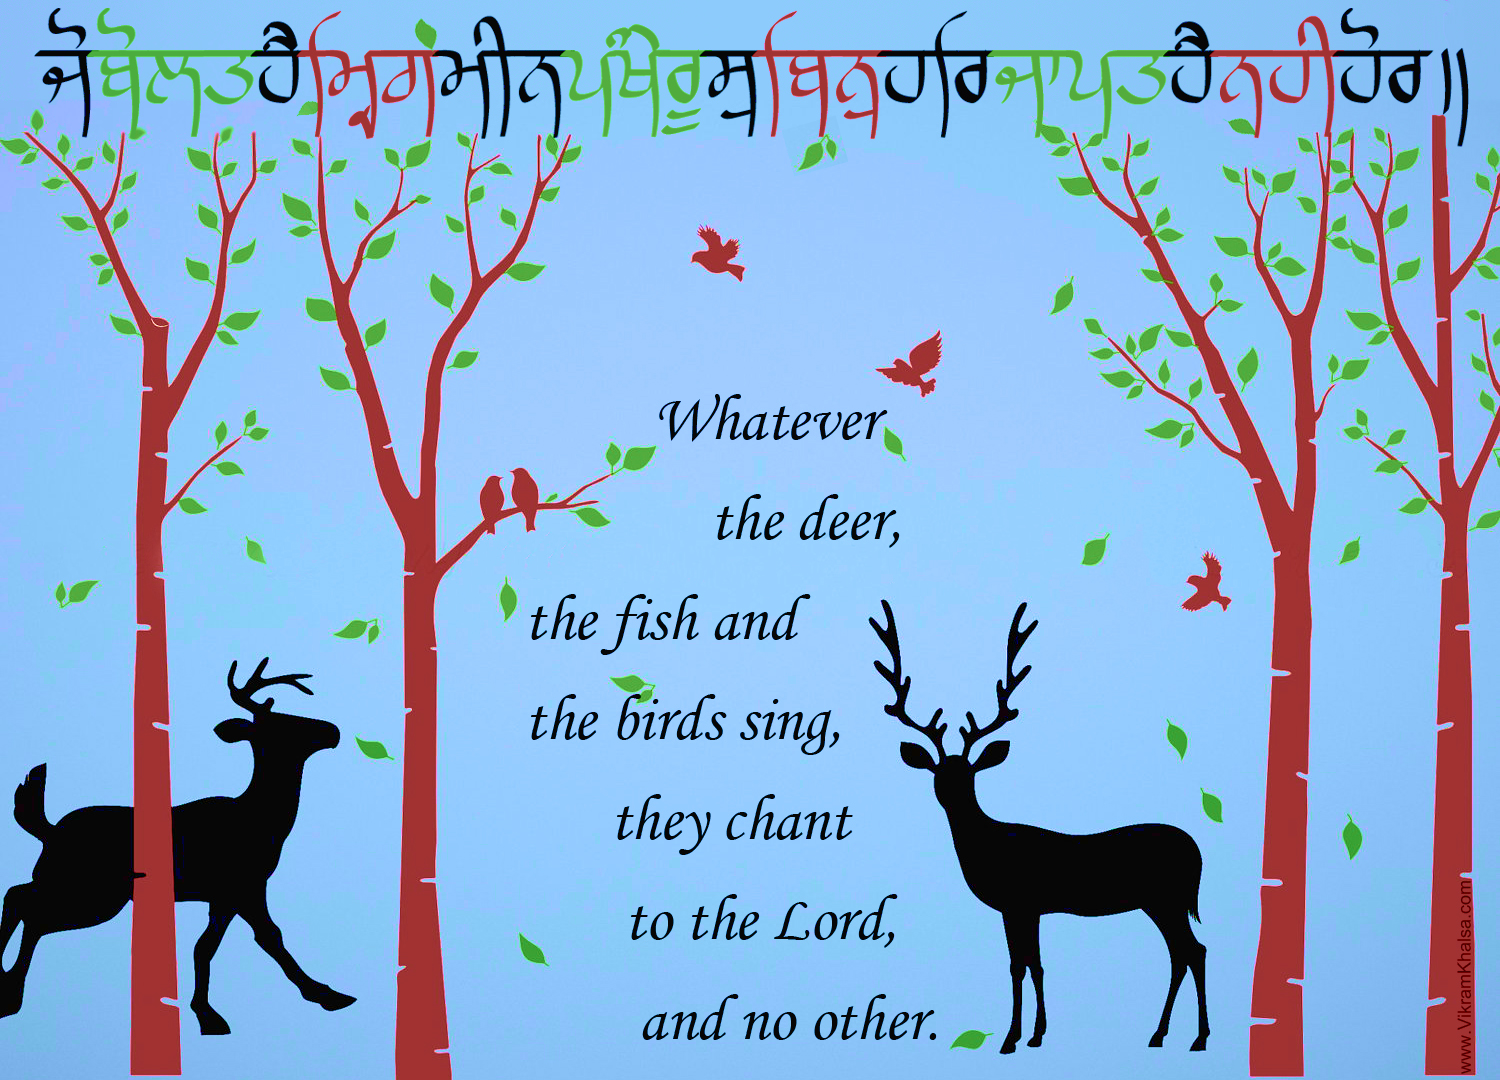 Even the birds and the deer sing to you